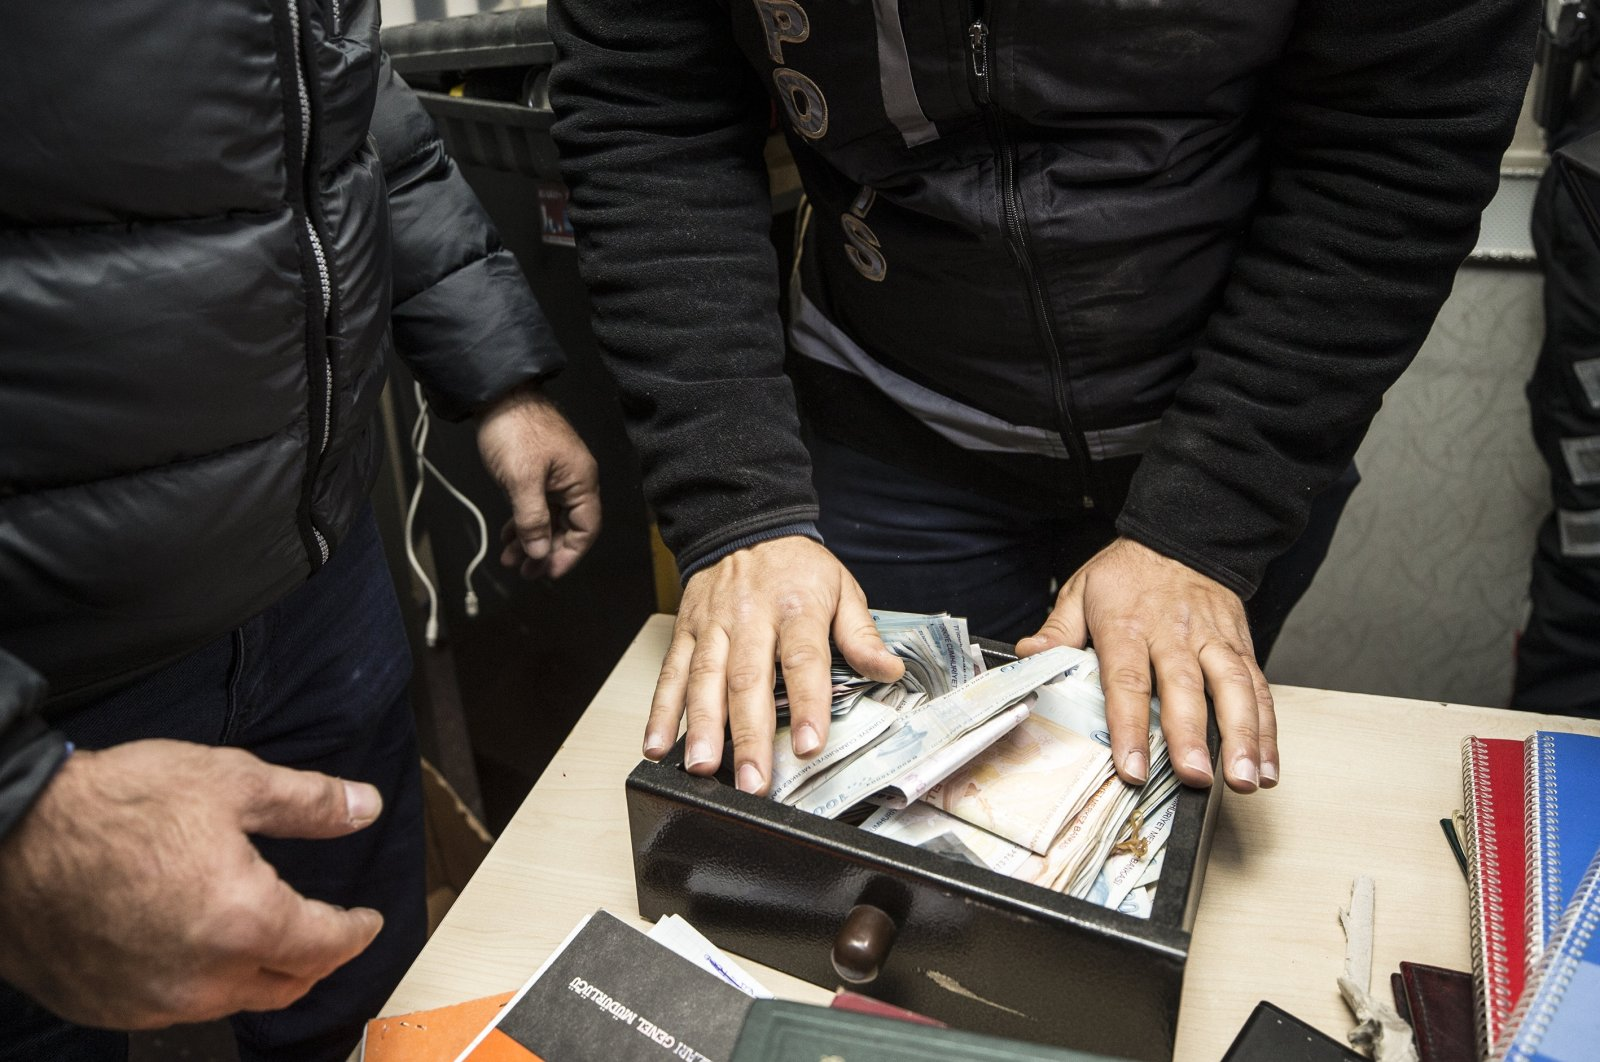 21 suspects of a criminal organization working for the PKK terrorist group have been detained in Ankara on charges of cybercrime, extortion and terrorist propaganda. (AA Photo)